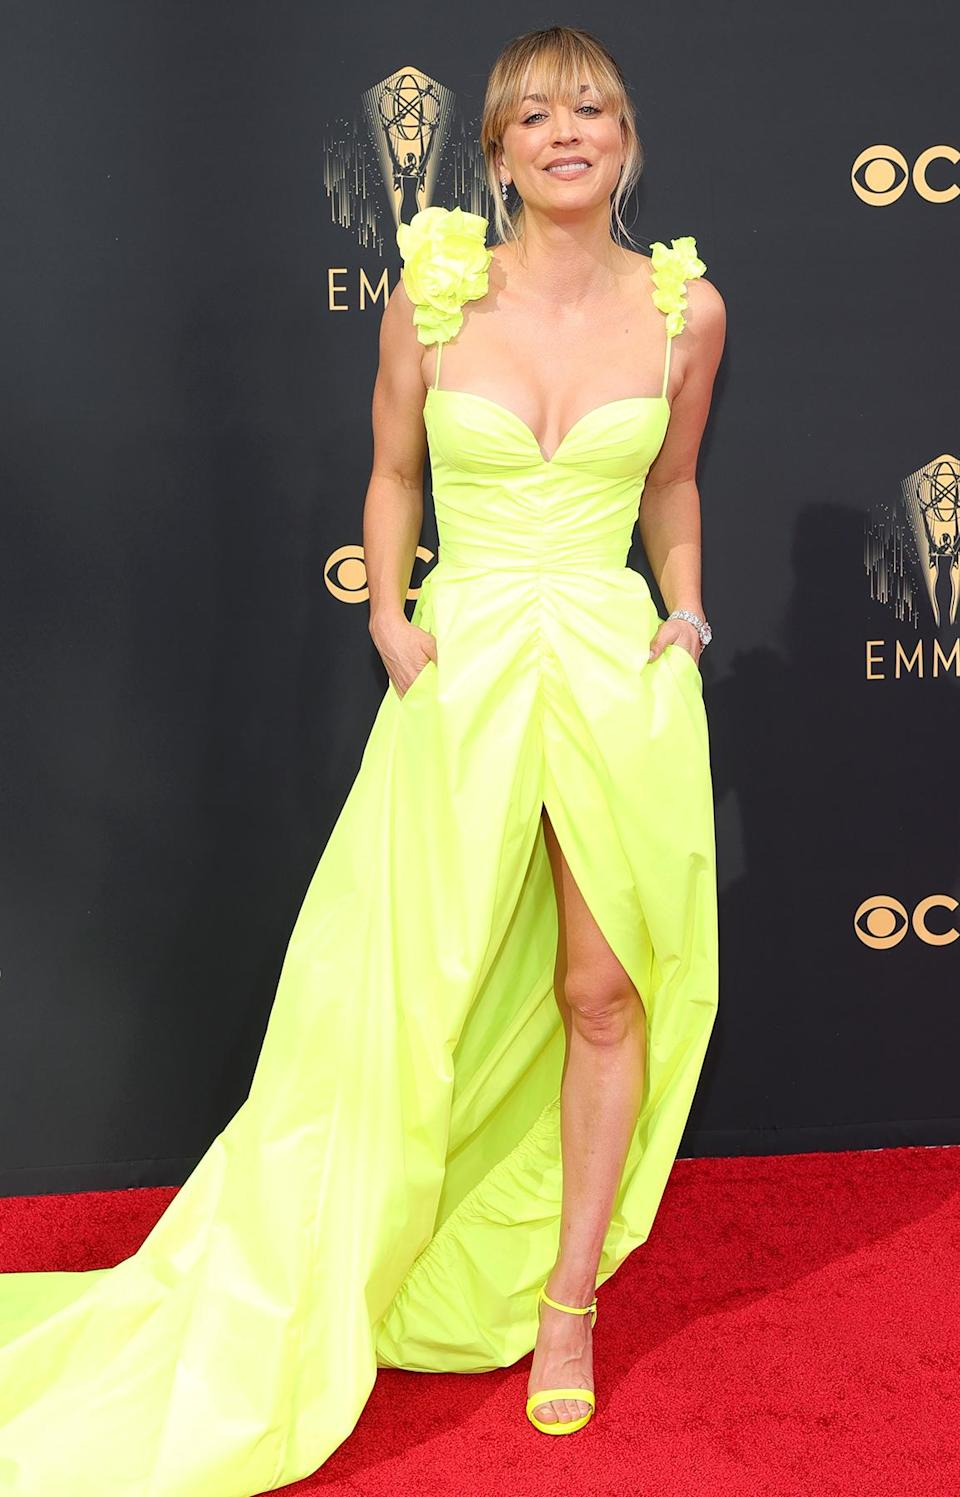 <p>pops on the carpet in her highlighter yellow Vera Wang gown featuring a center split, ruched bodice and floral appliqués at the sleeves, paired with matching sandals and De Beers jewels.</p>